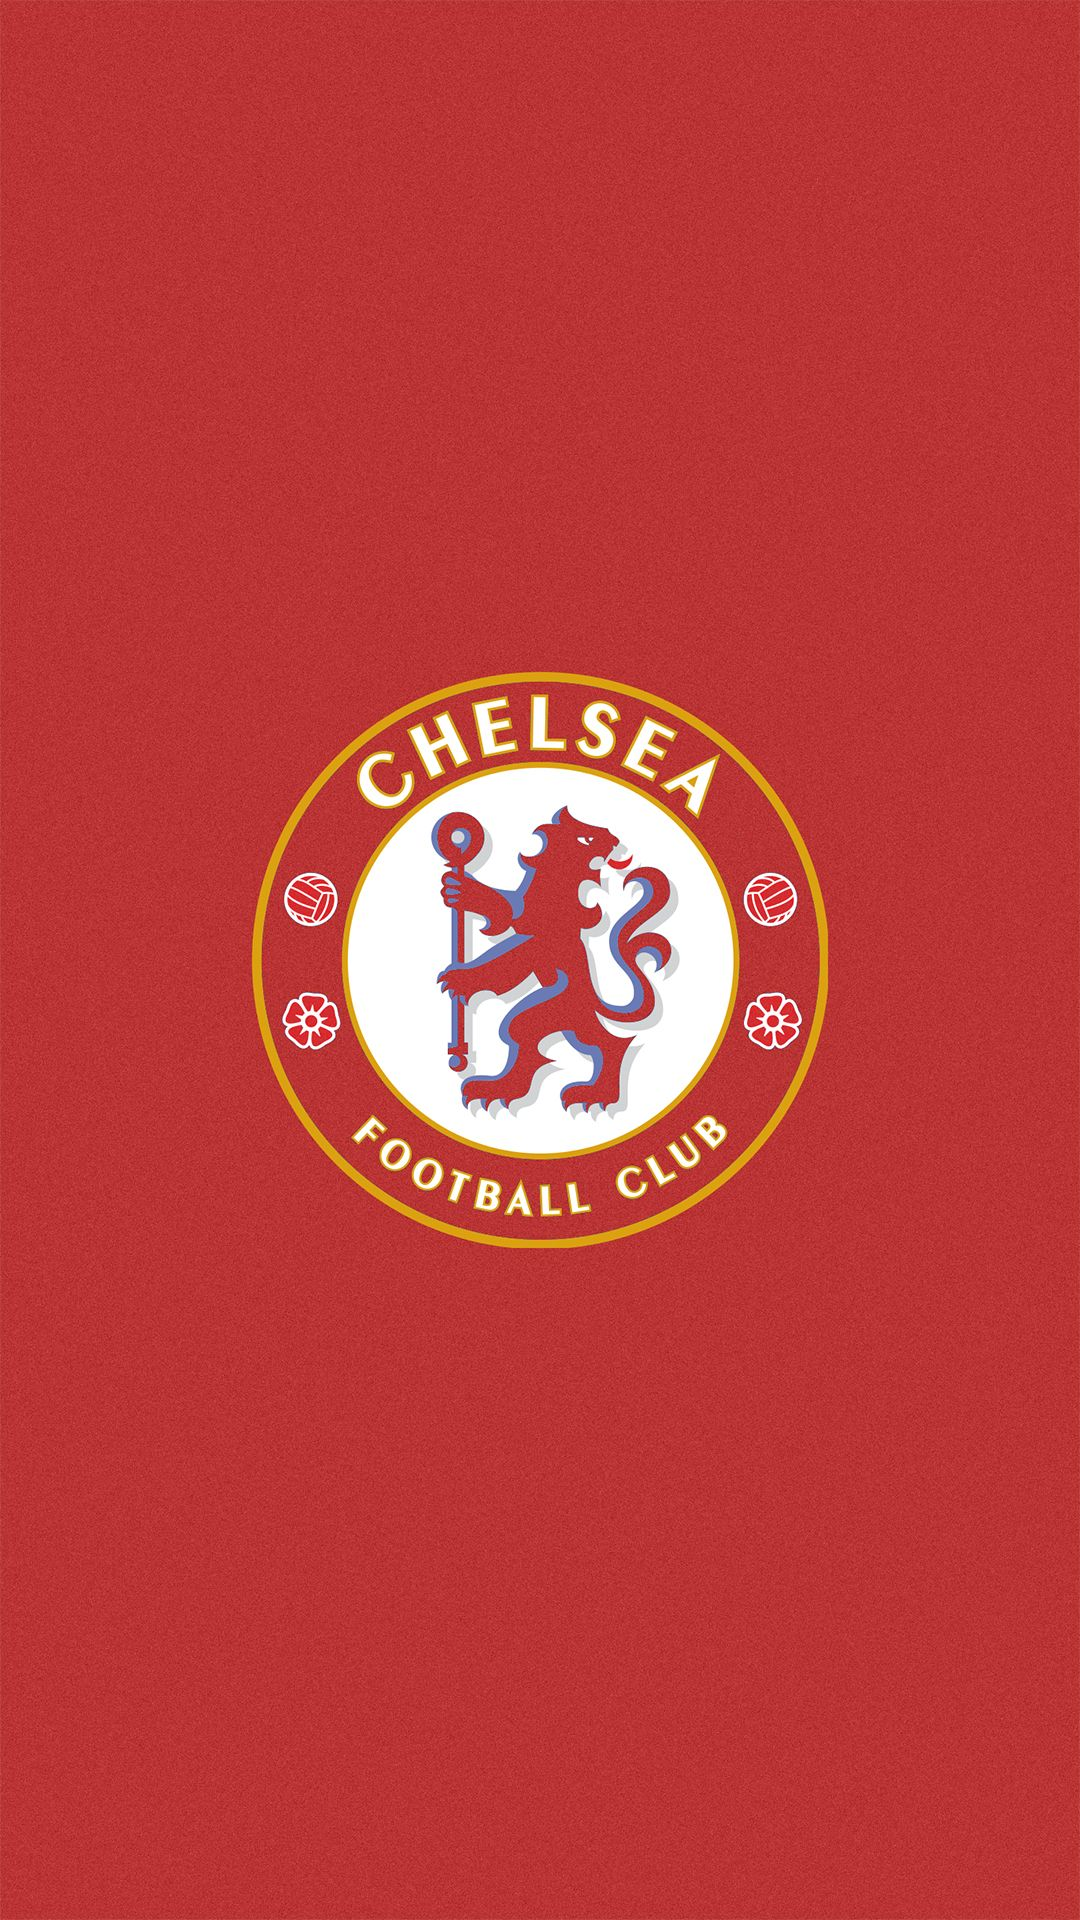 Chelsea Iphone Wallpapers Top Free Chelsea Iphone